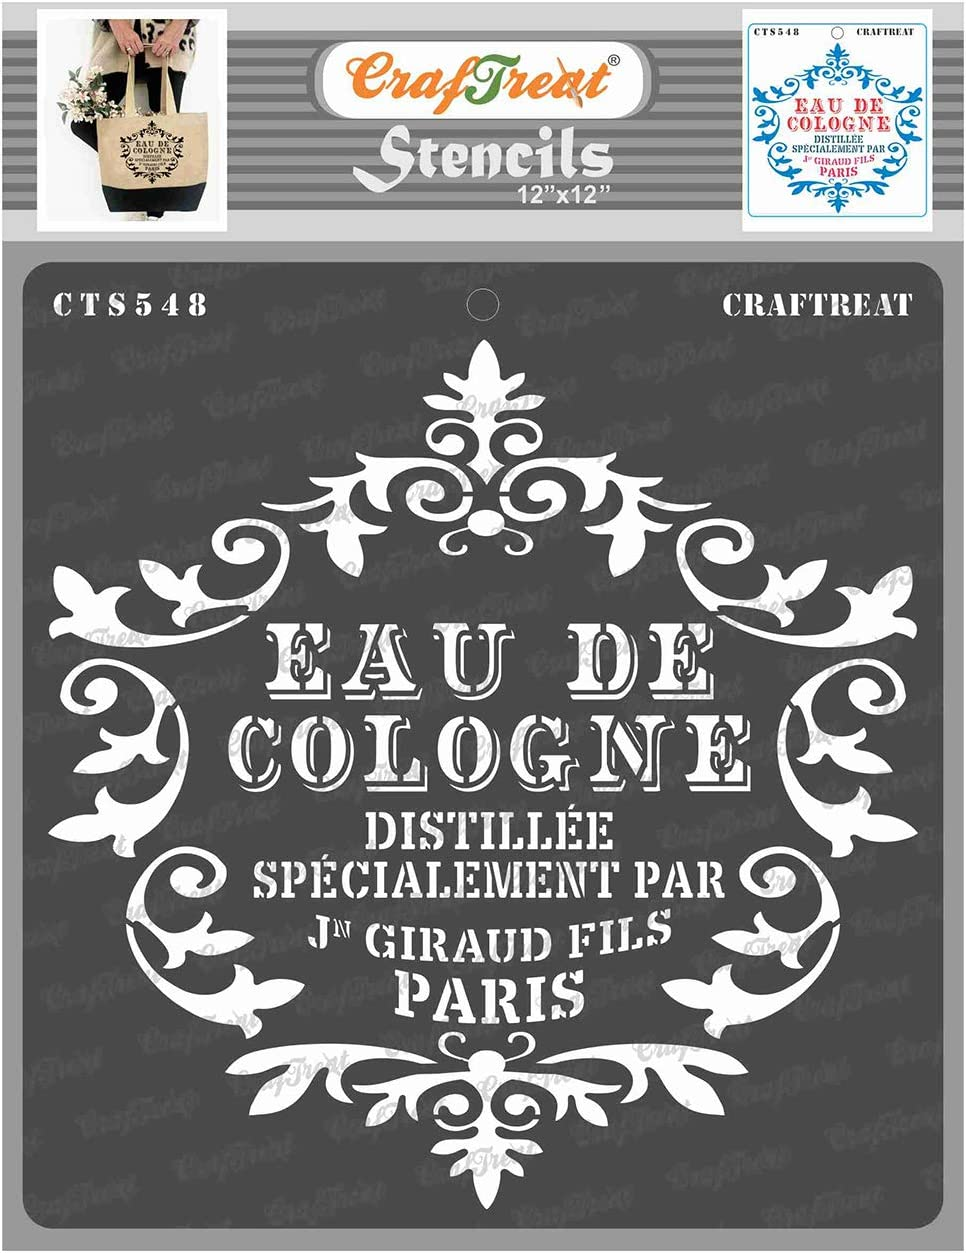 CrafTreat French Stencils for painting on Wood, Canvas, Paper, Fabric, Floor, Wall and Tile - Eau De Cologne - 12x12 Inches - Reusable DIY Art and Craft Stencils for Home Decor - french Script Stencil